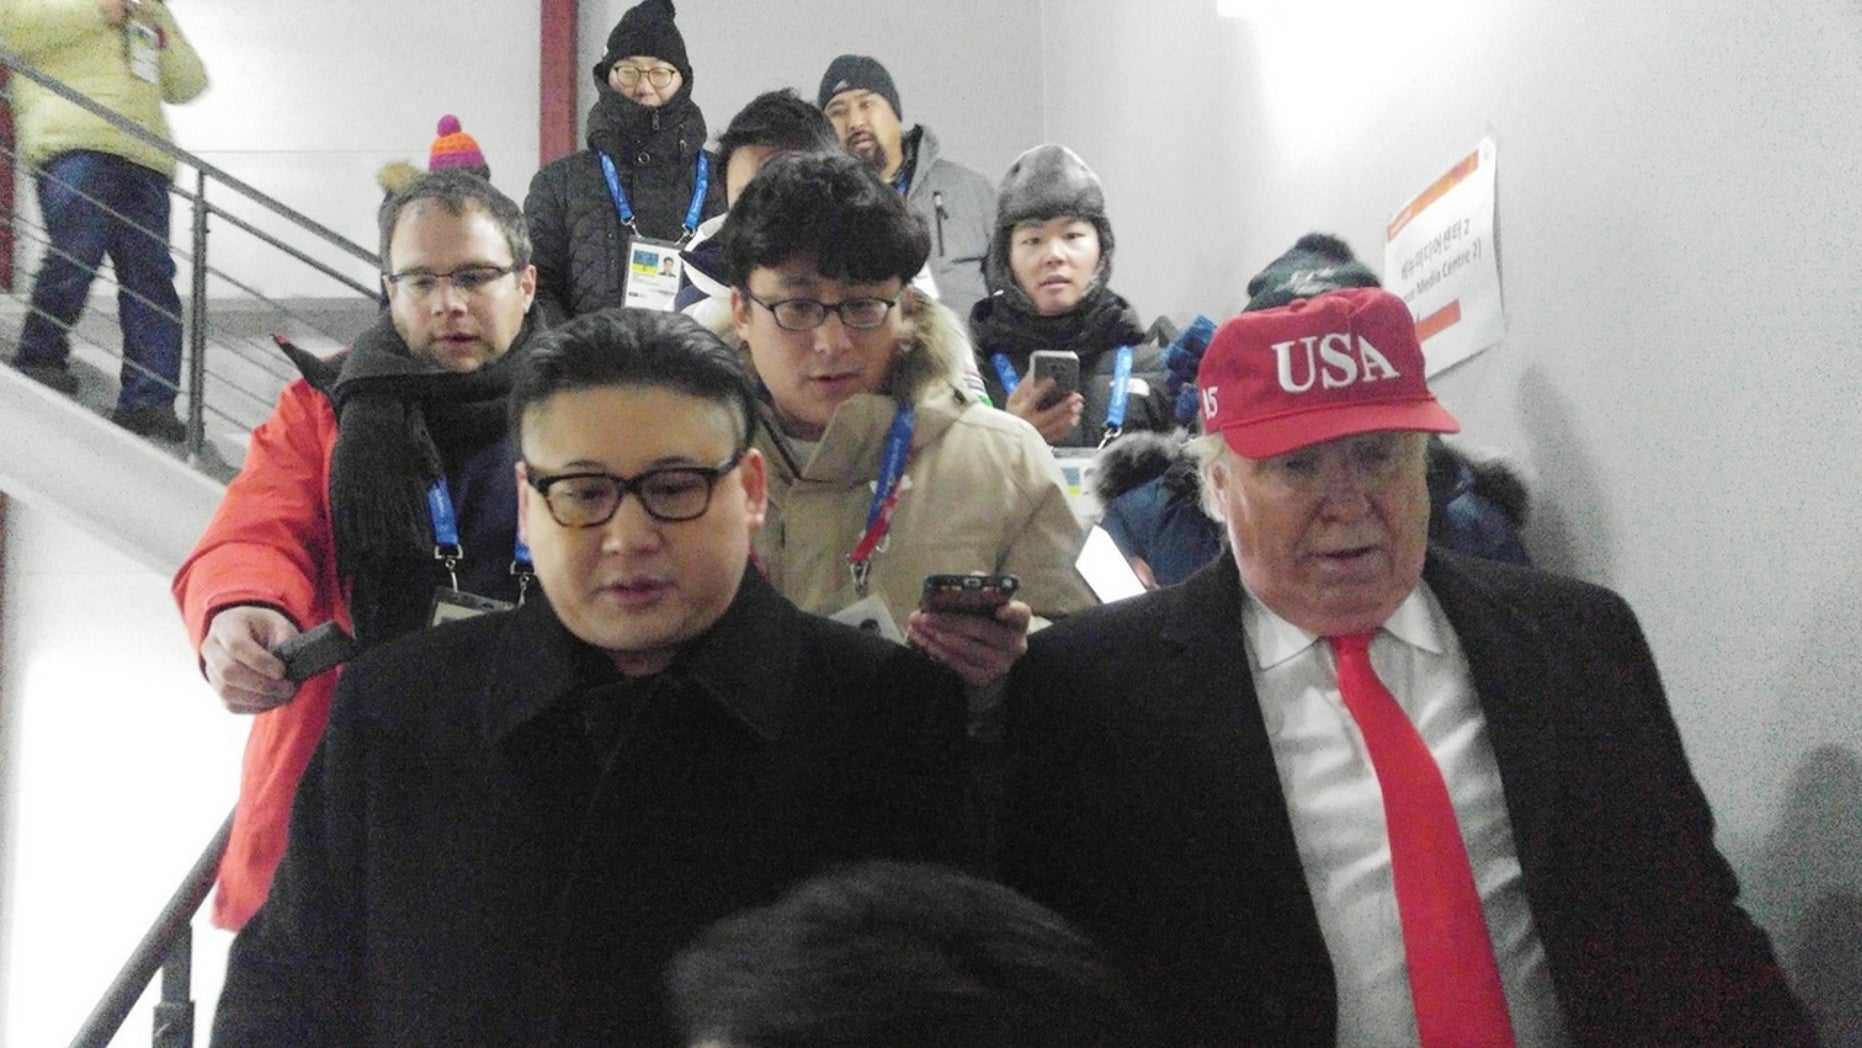 Kim Jong Un and President Trump impersonators were booted from the Olympic Games' opening ceremony.